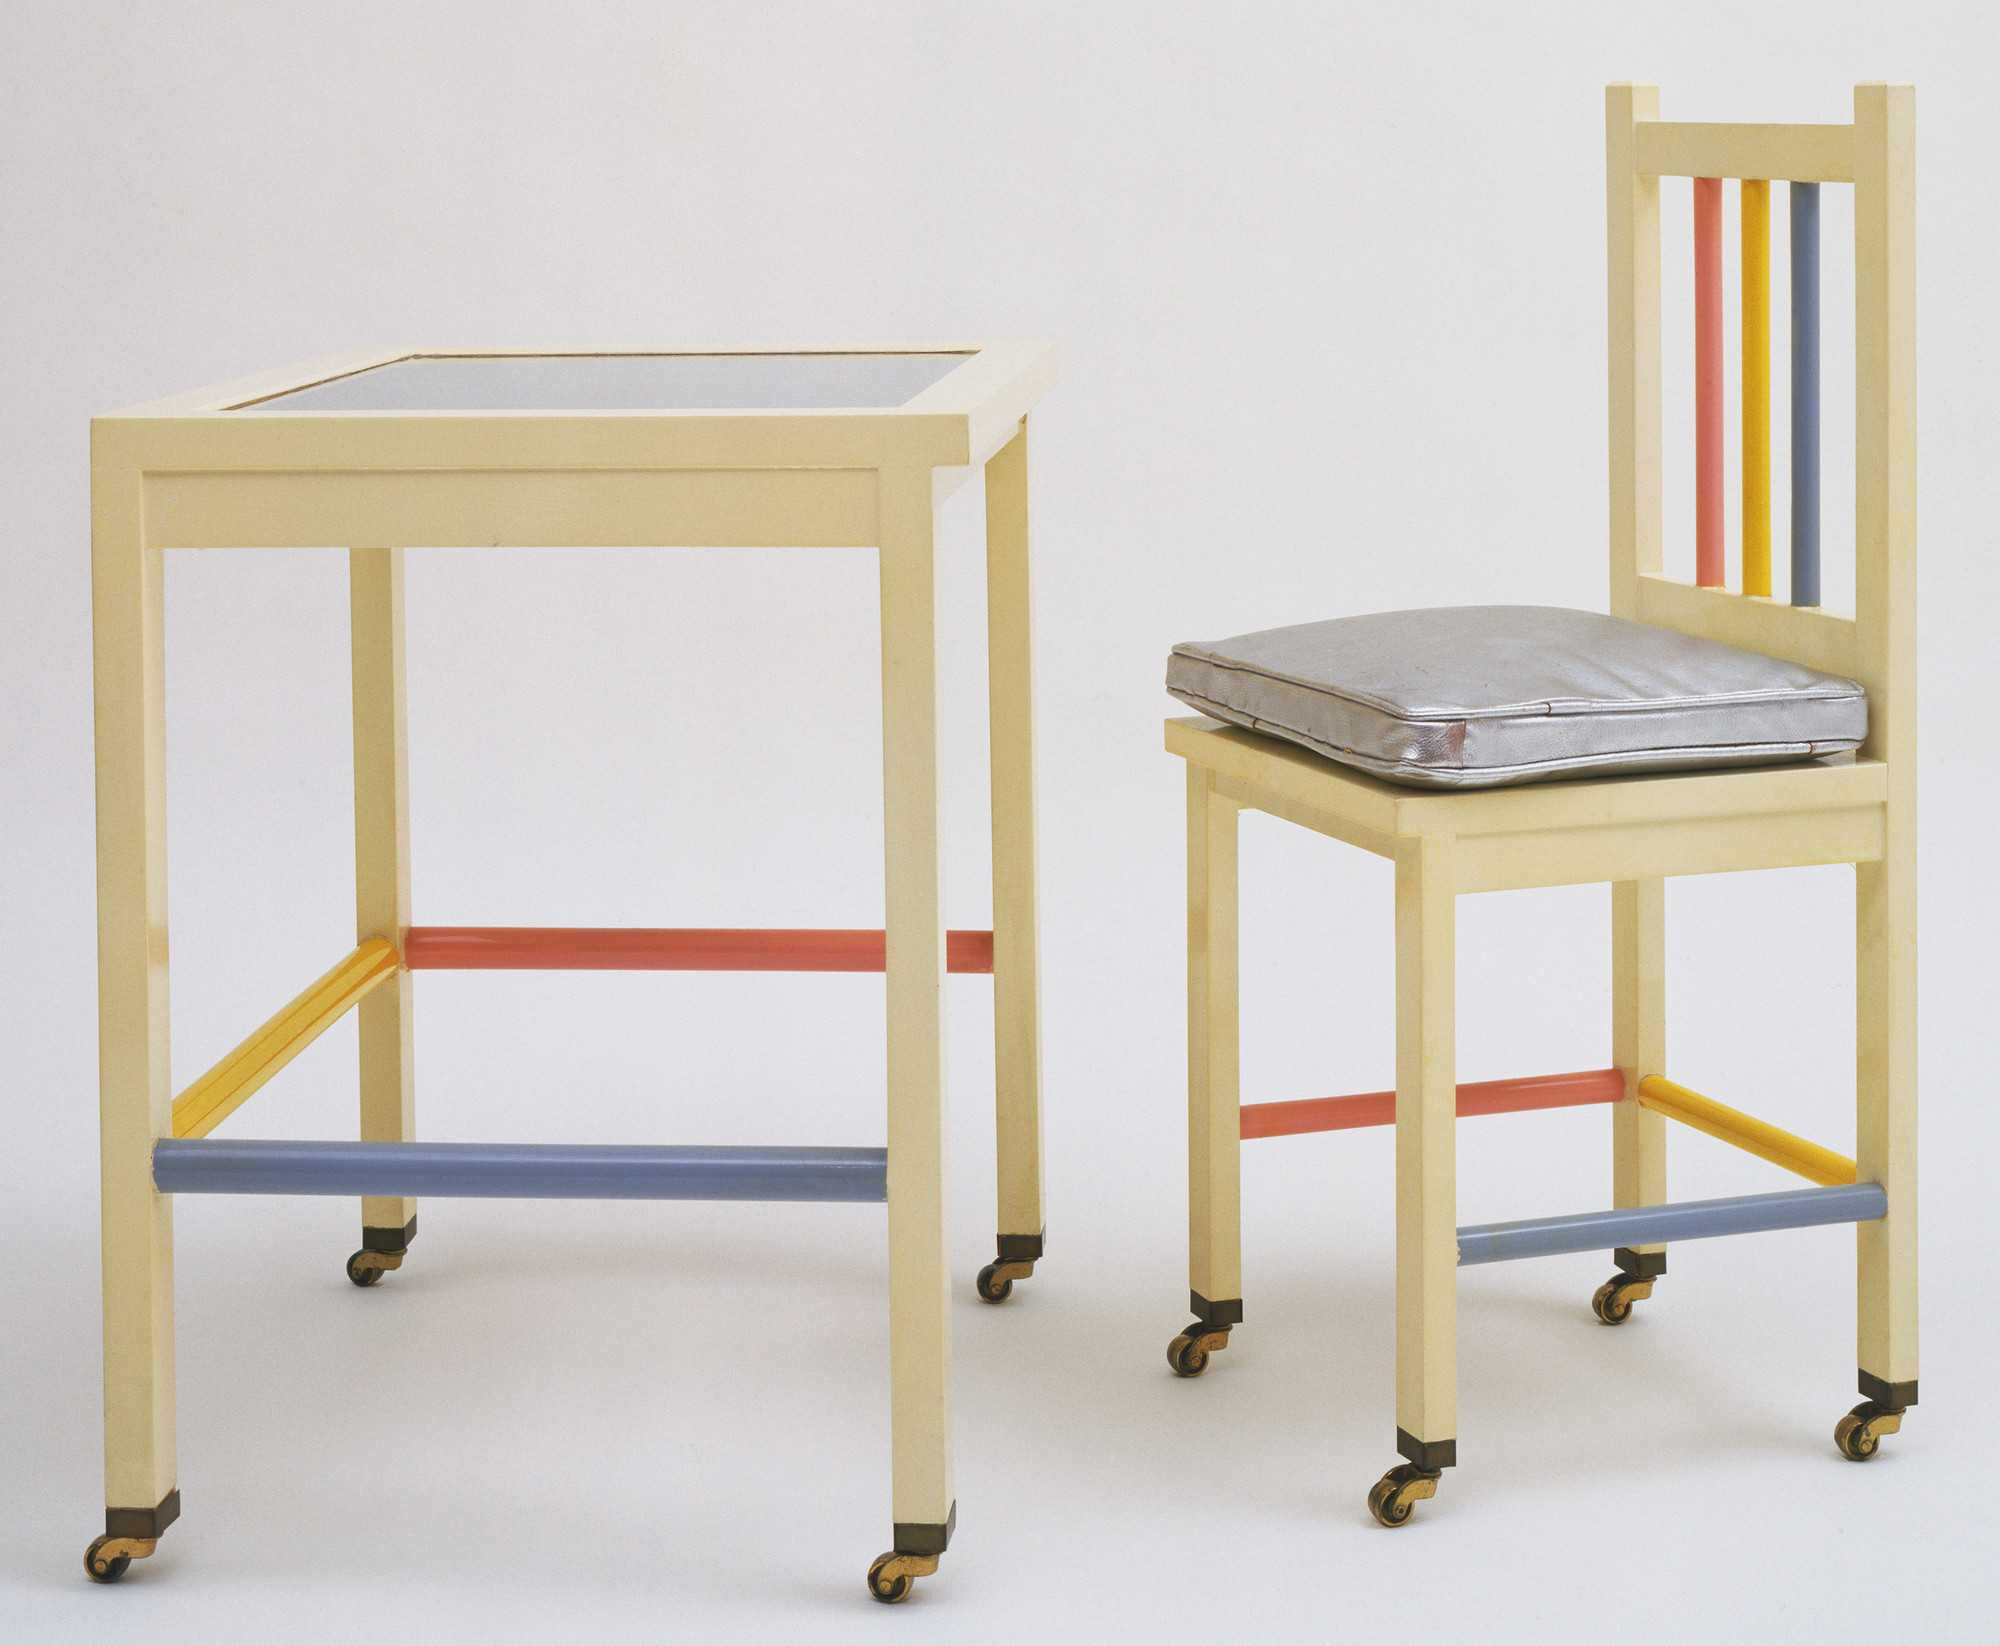 Scott Burton. Child's Table and Chair. 1978